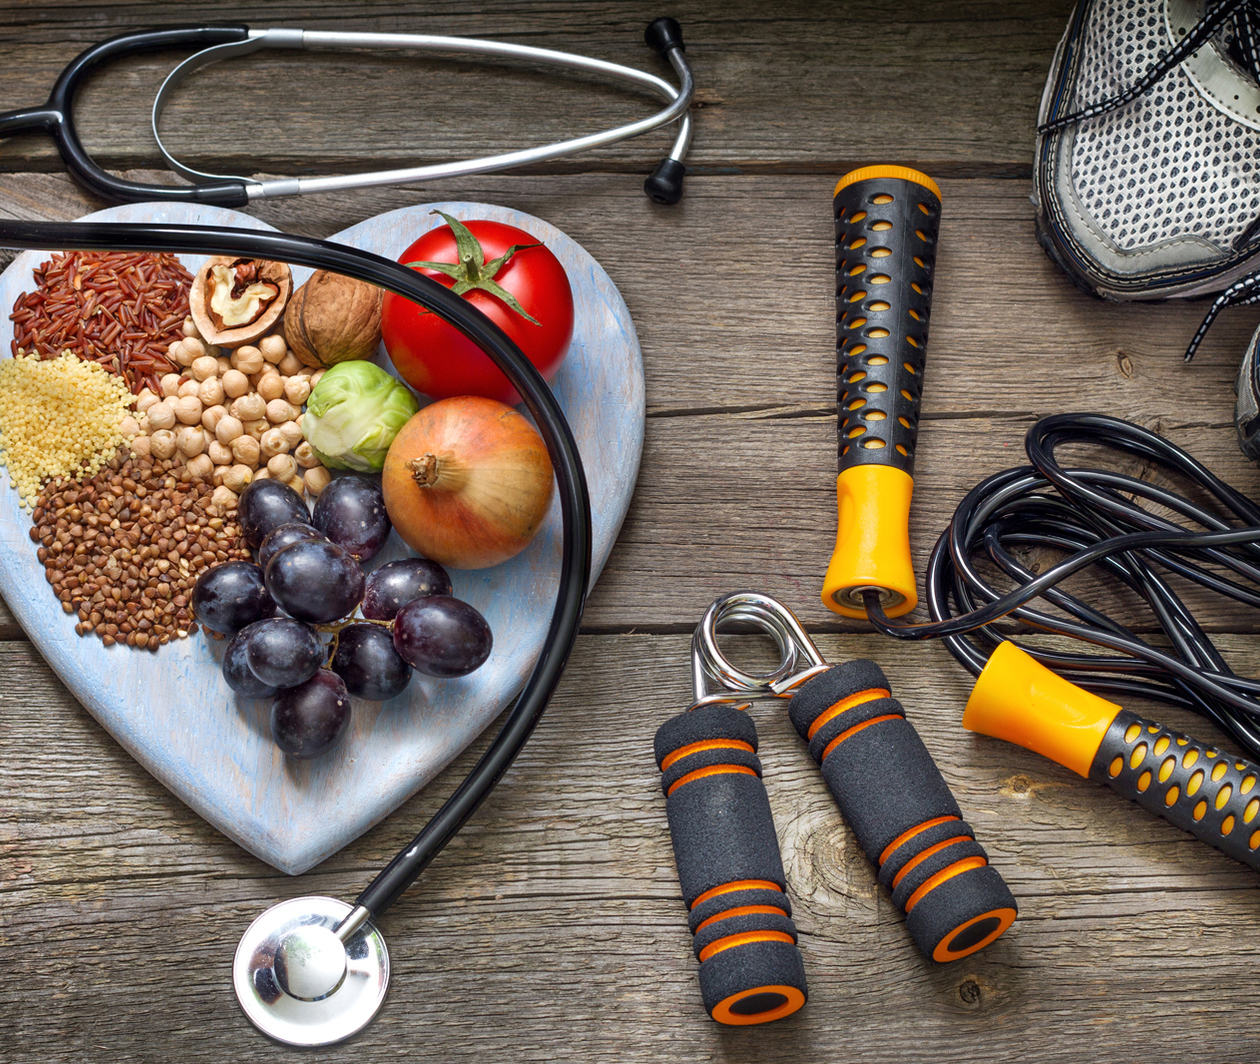 Food as Medicine: Food, Exercise and the Gut